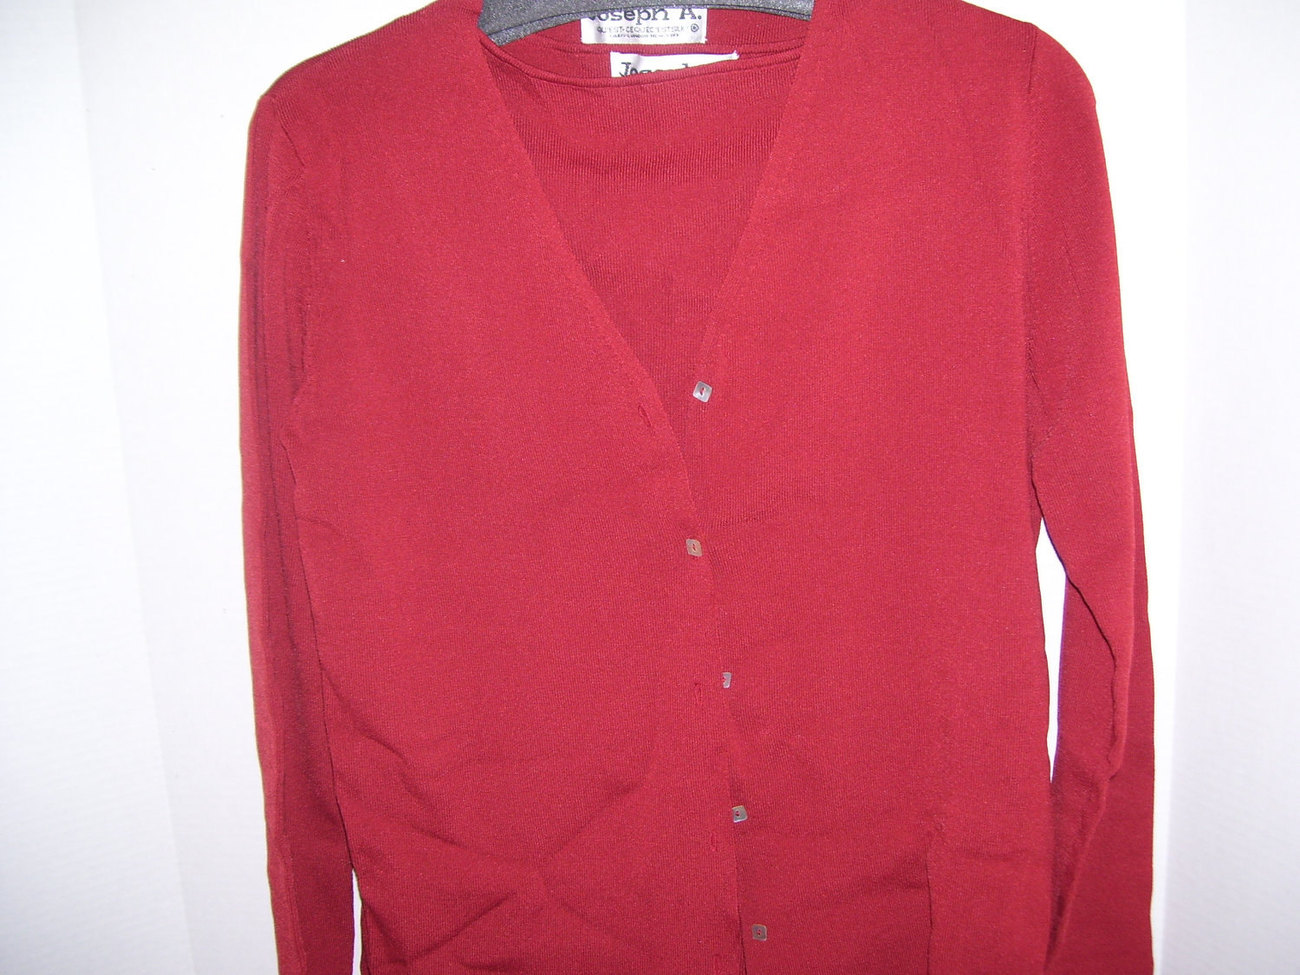 Sweater Set Size L Joseph A  Cardigan and Shell Dressy to Denim Soft Rust Red